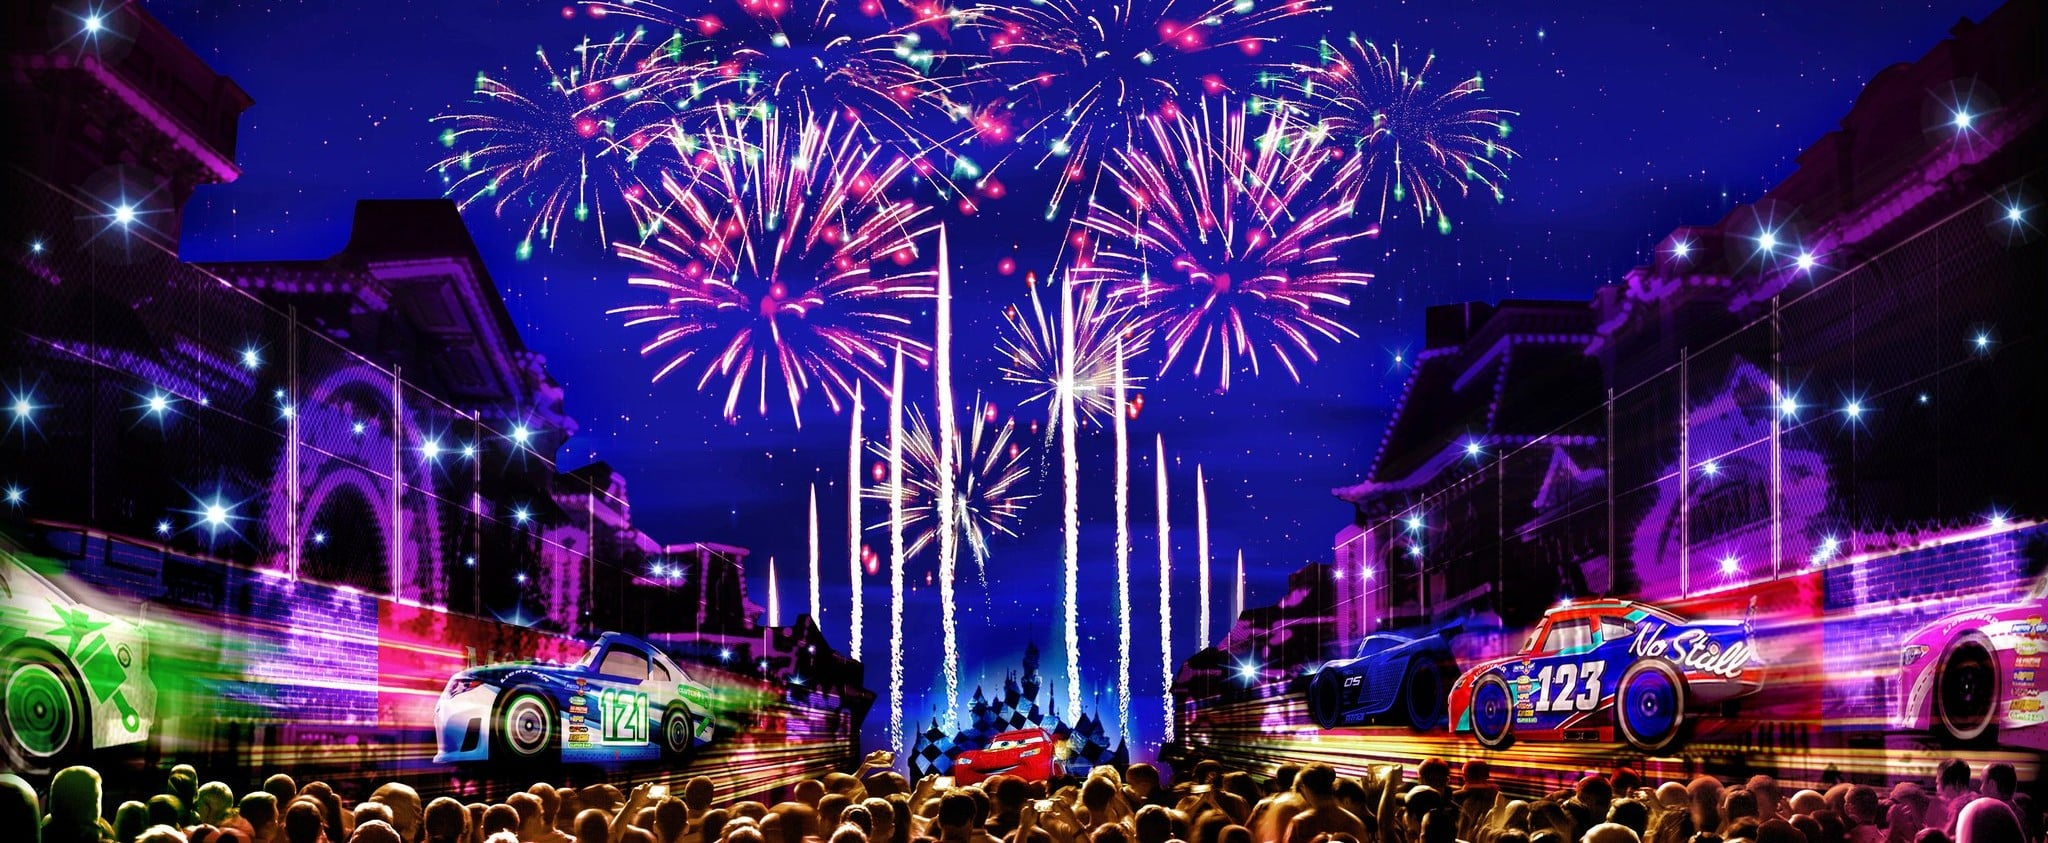 A New Pixar-Themed Fireworks Show Will Dazzle Disneyland This April